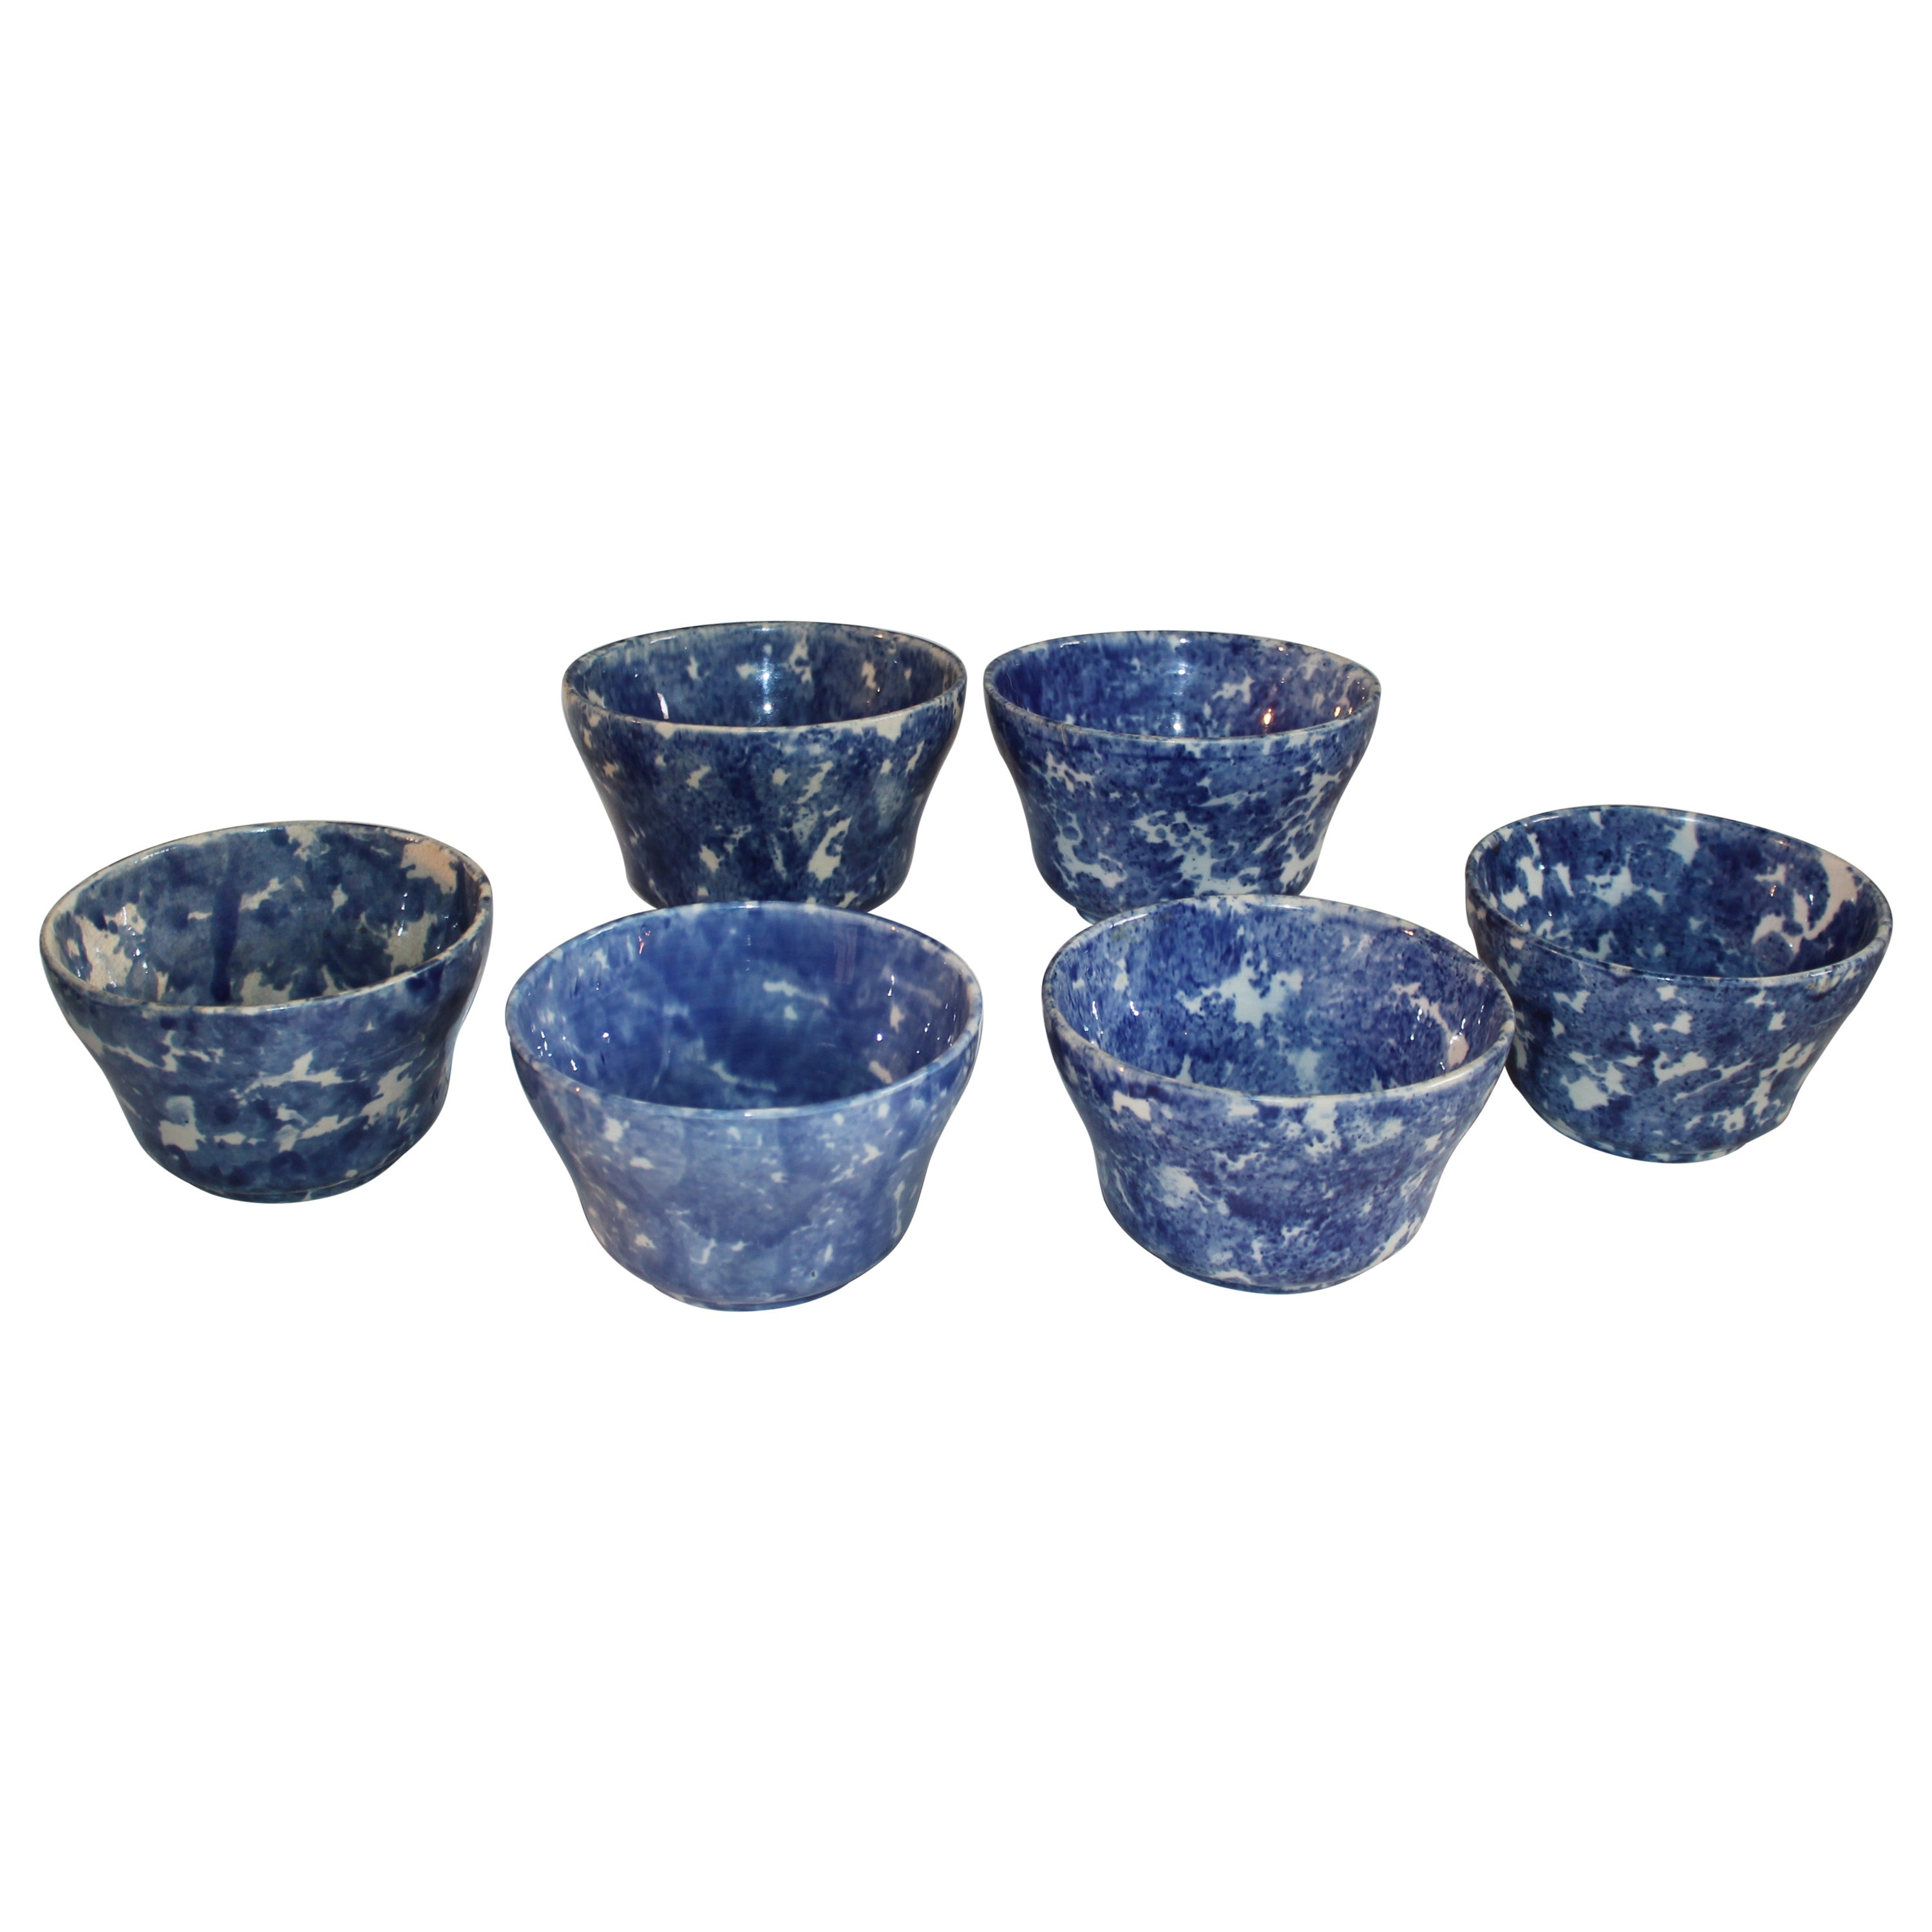 19thc Collection of Six Sponge Ware Waste Bowls